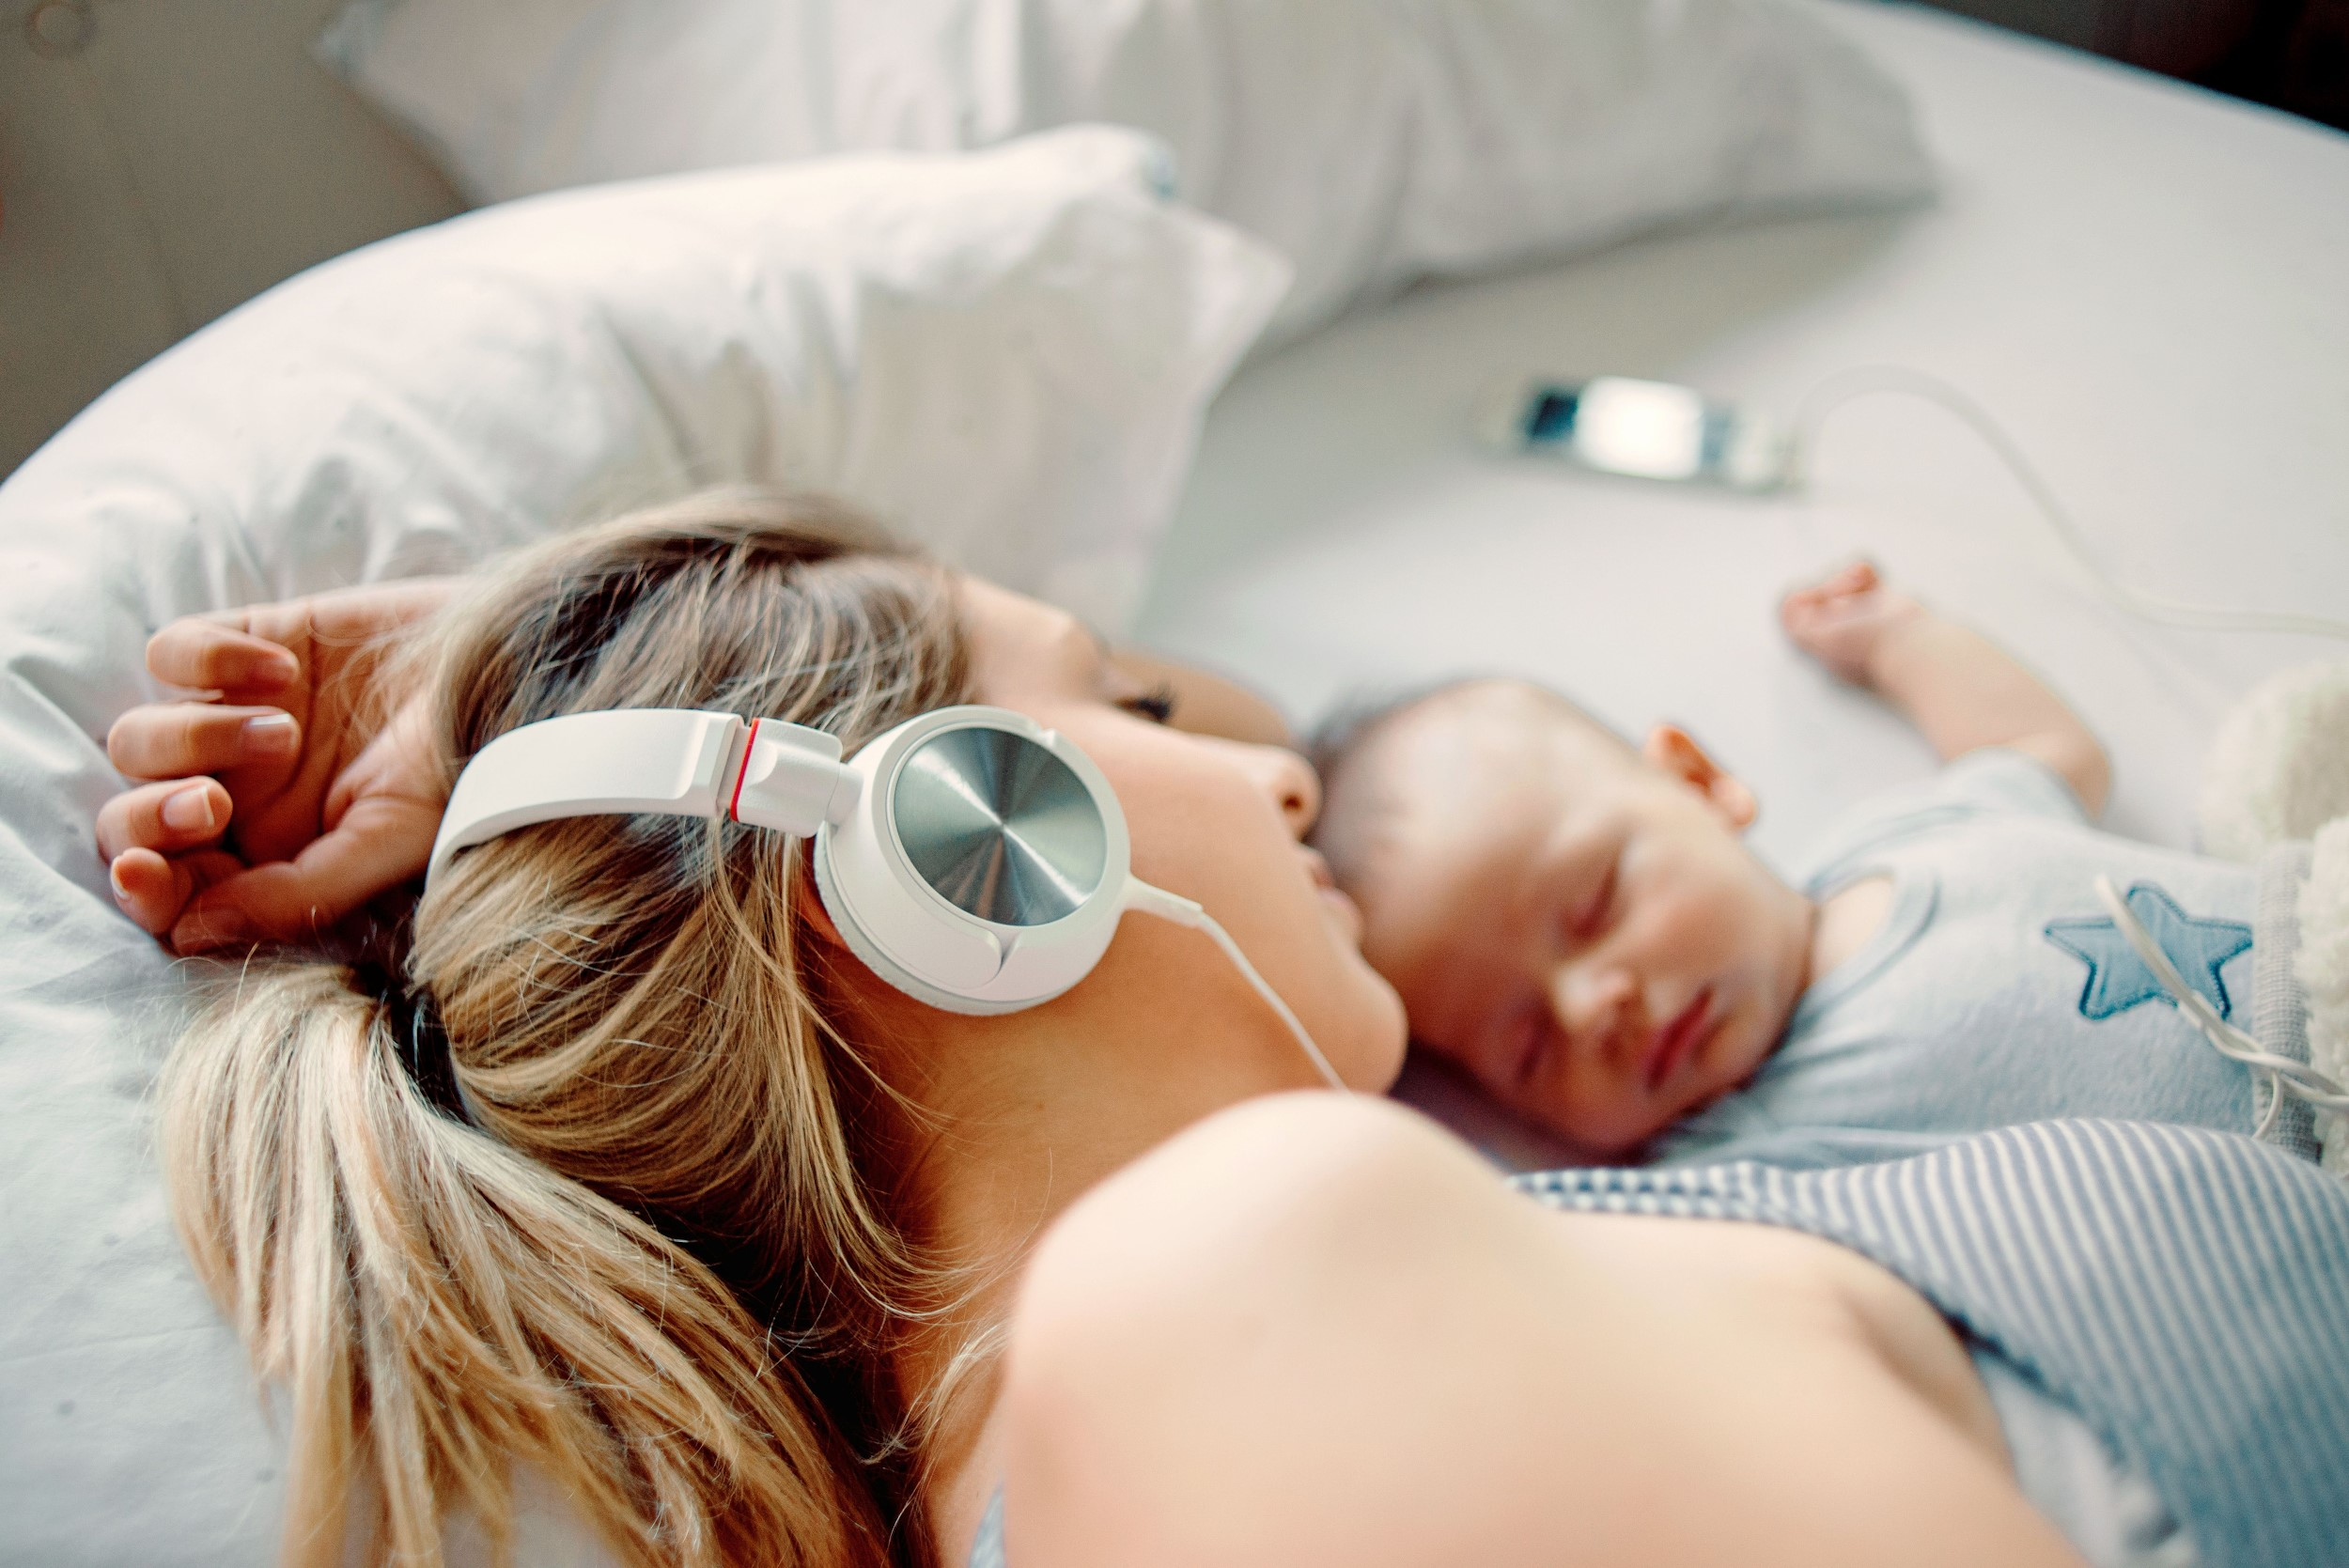 Woman lying next to hear newborn, listening to a postpartum affirmations MP3